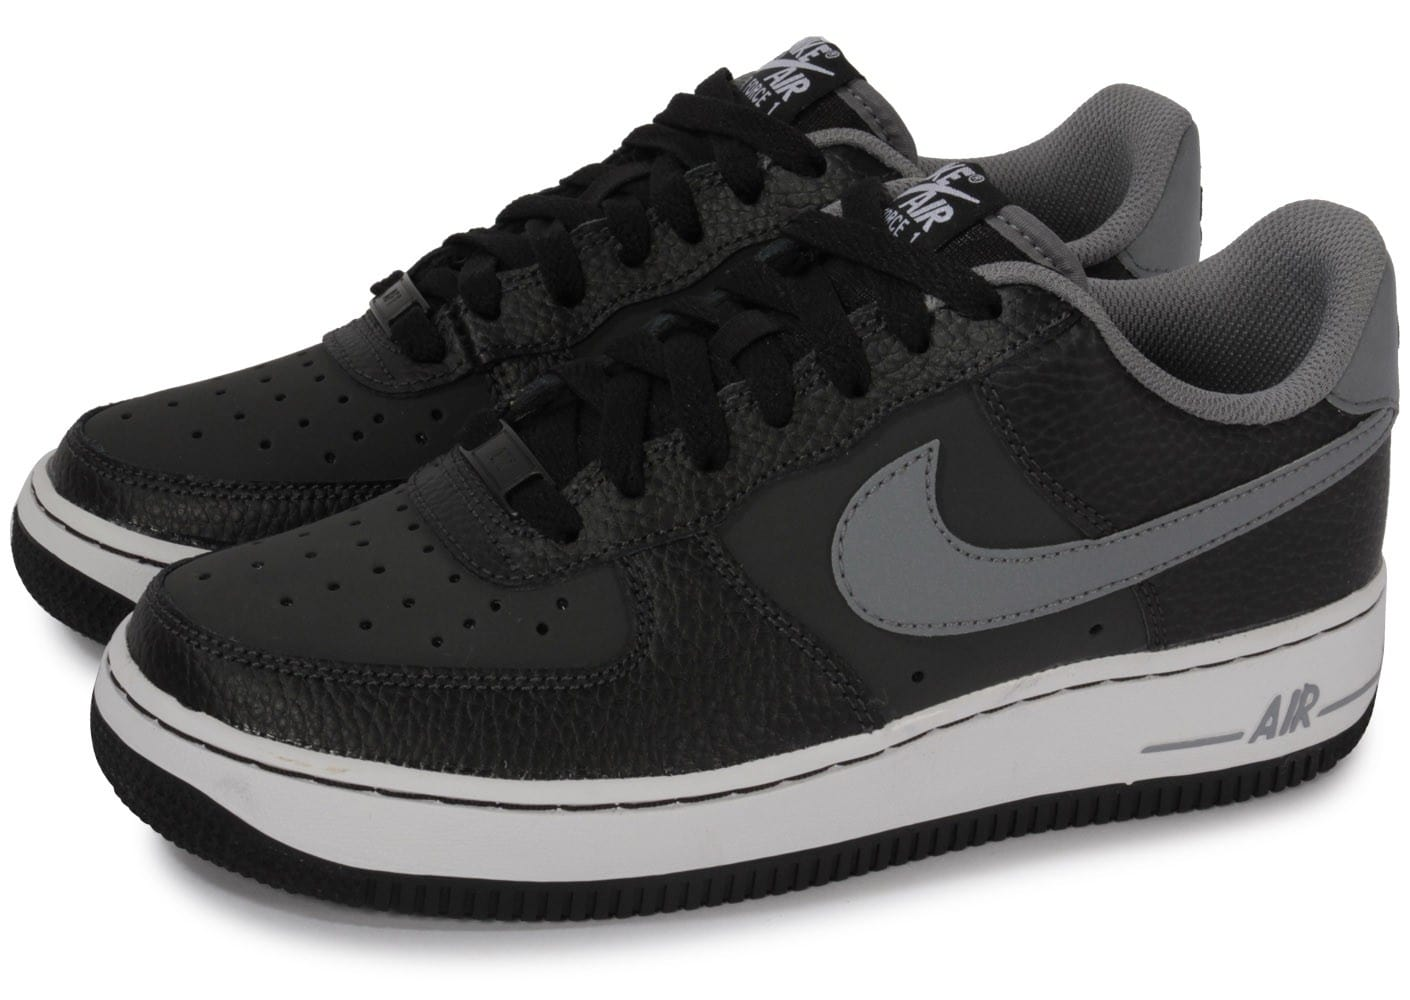 nike air force 1 noire et grise chaussures chaussures. Black Bedroom Furniture Sets. Home Design Ideas